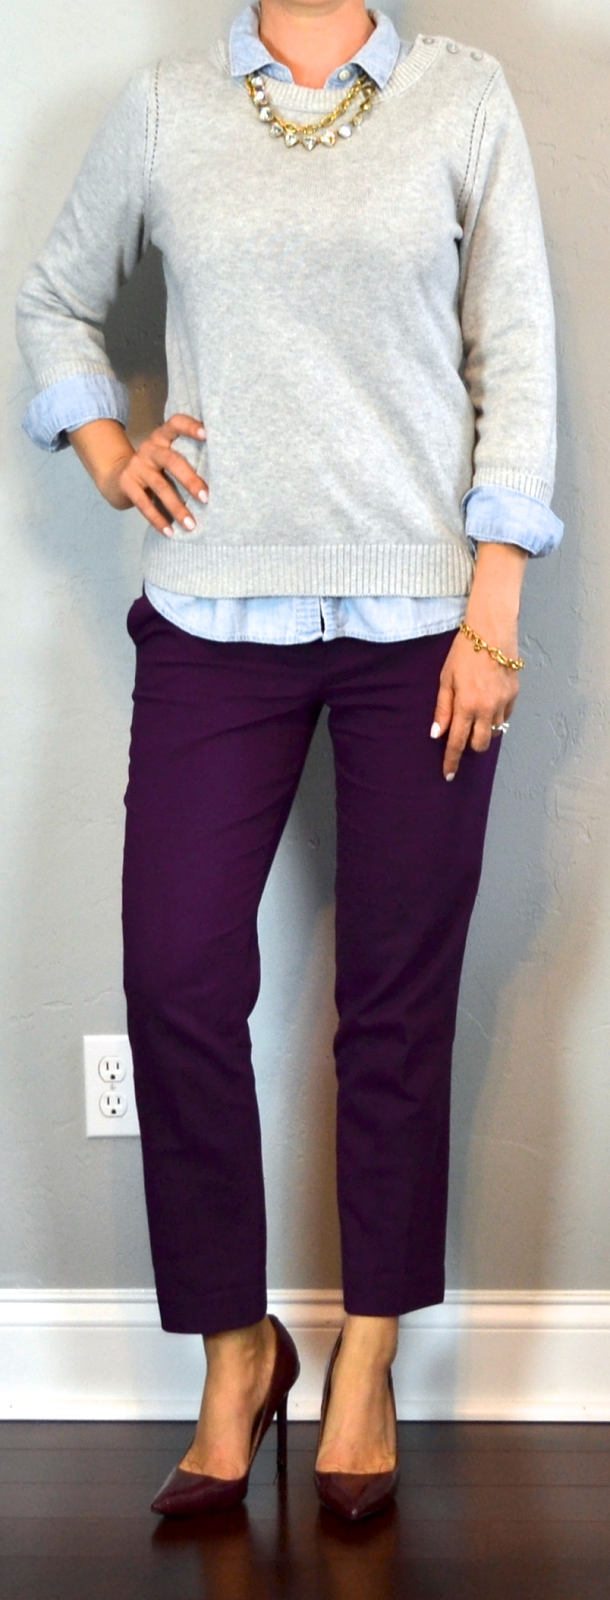 b003d22787 outfit post  purple cropped ankle pants